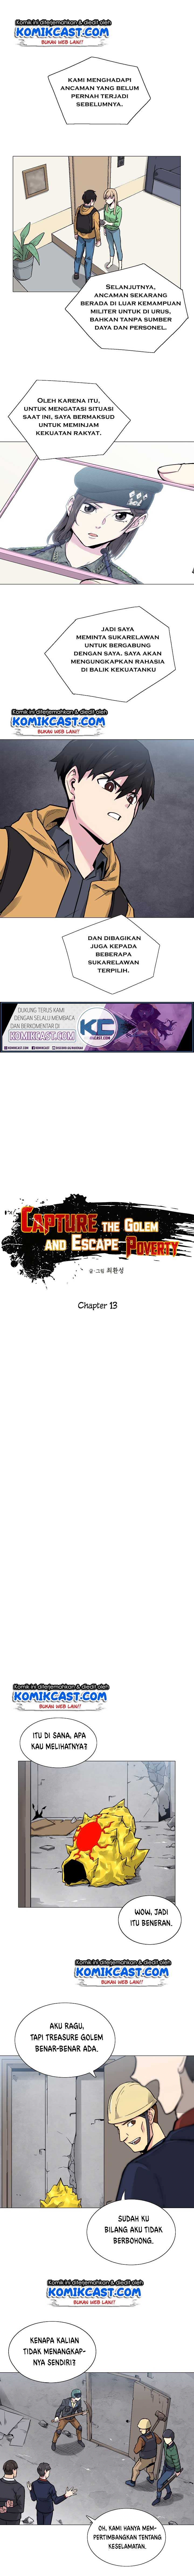 Escape From The Poverty by Catching Golem Chapter 13 Bahasa Indonesia